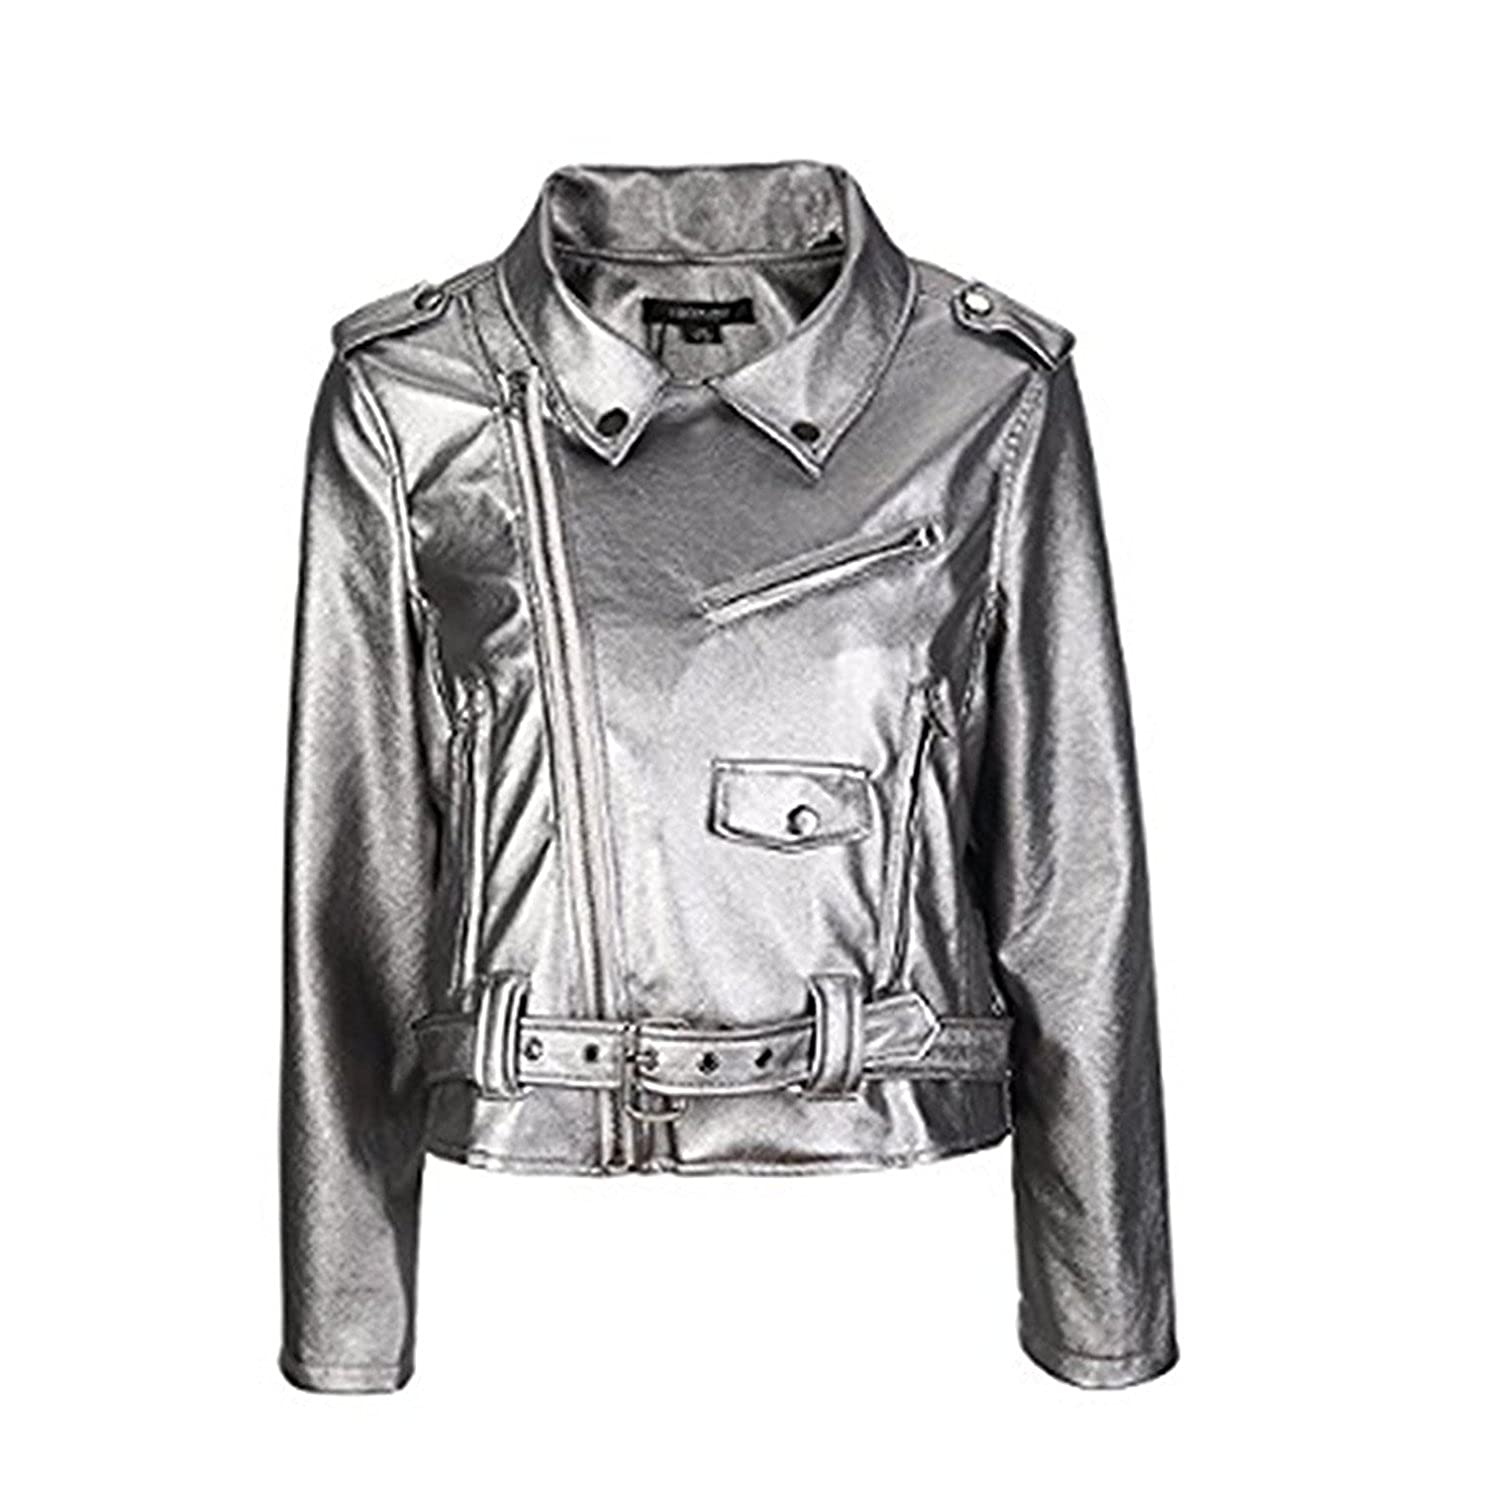 Sonder Fashion Womens Slim Zipper Motorcycle Biker Faux Leather PU Jacket Crop Coat at Amazon Womens Coats Shop